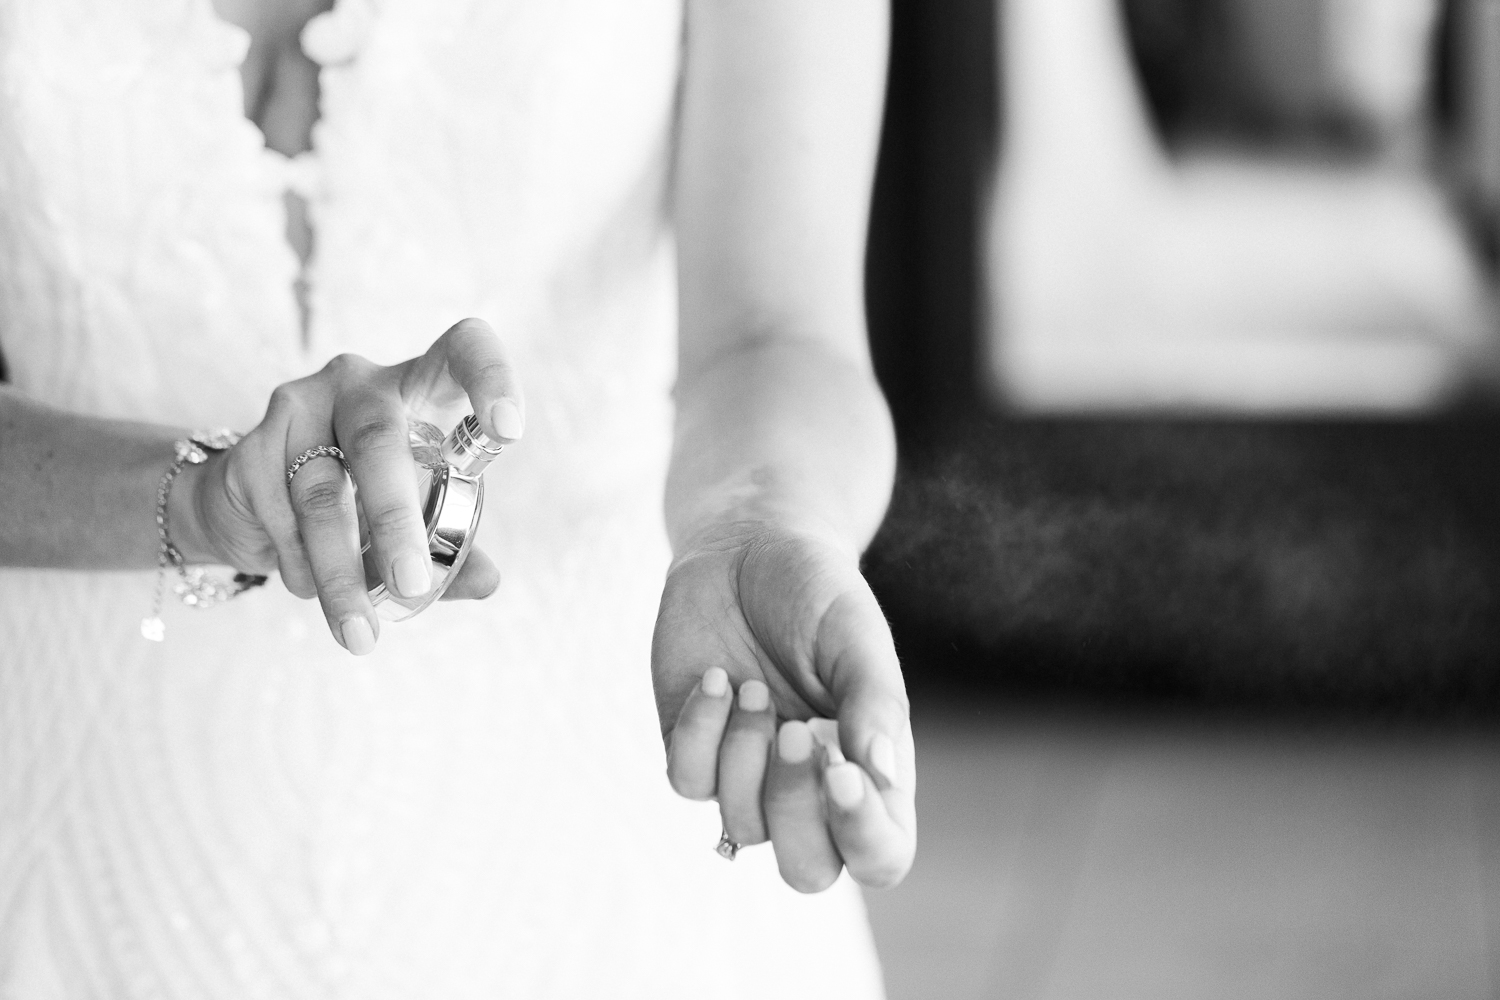 B&W image of bride spraying her perfume